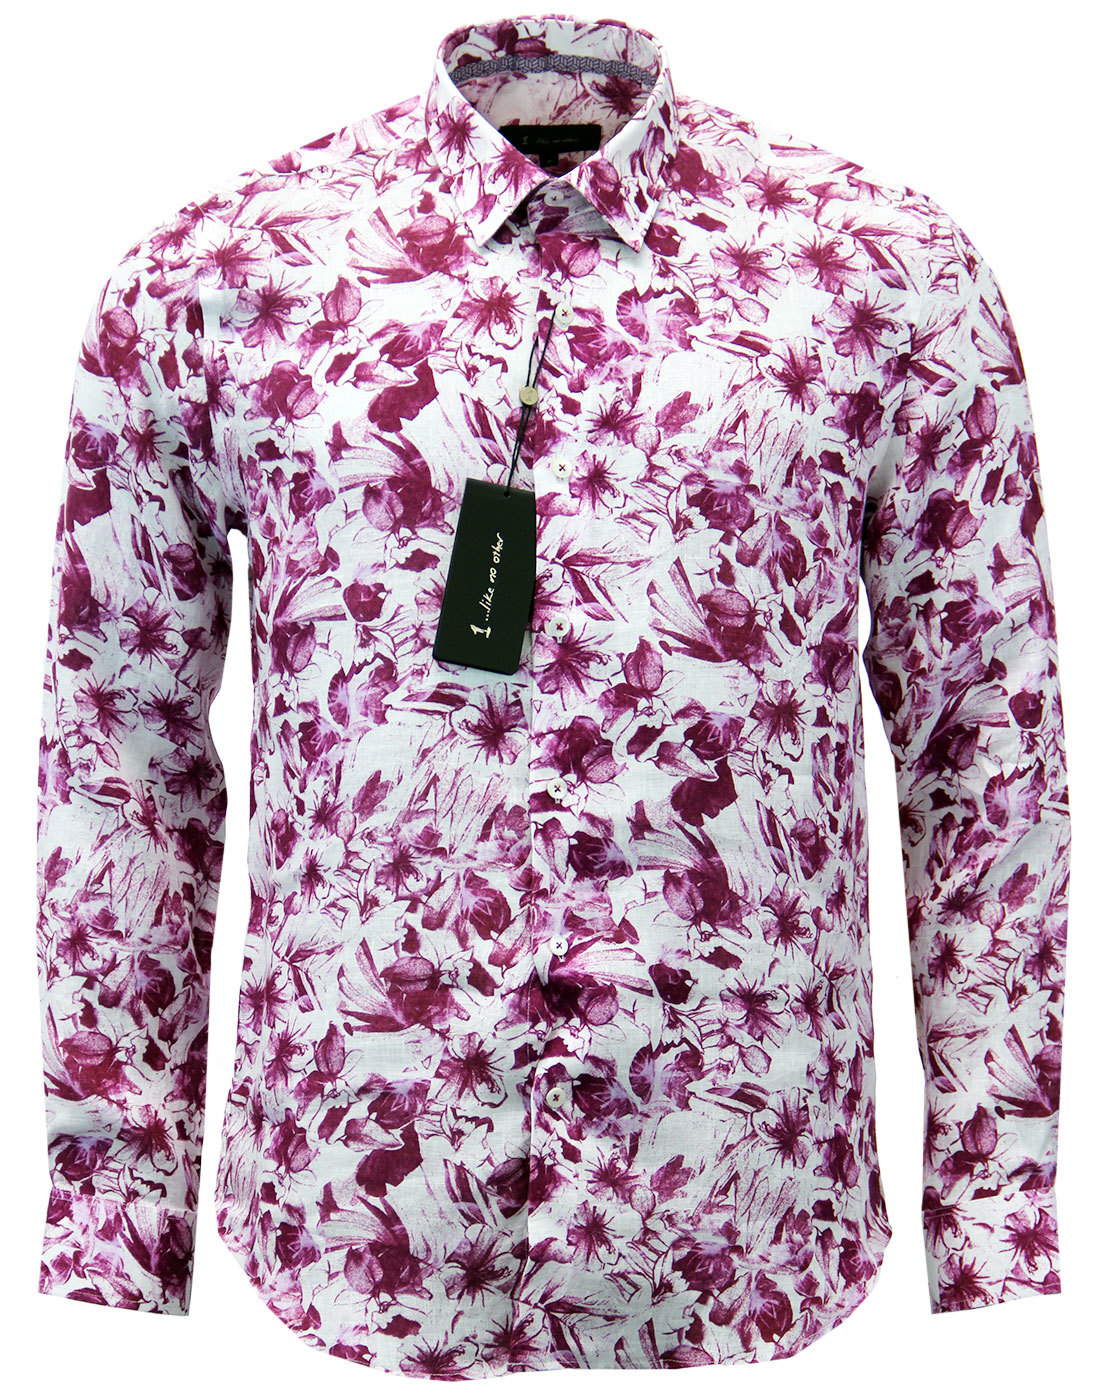 Franz 1 LIKE NO OTHER Retro 70s Floral Linen Shirt